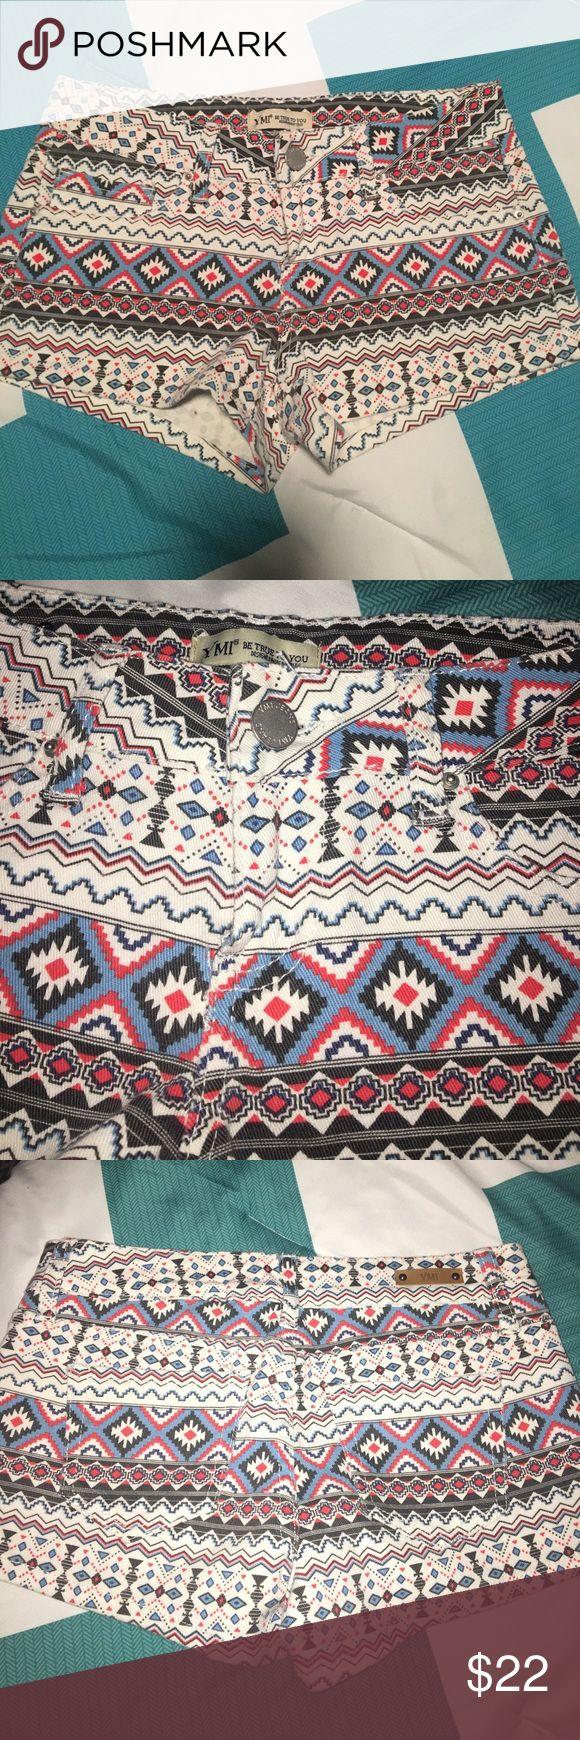 "New! Aztec print shorts! Adorable off white shorts with red, blue & black print. Perfect condition!!!! 2"" inseam. Sz 3 juniors. Stretchy material! YMI Shorts Jean Shorts"